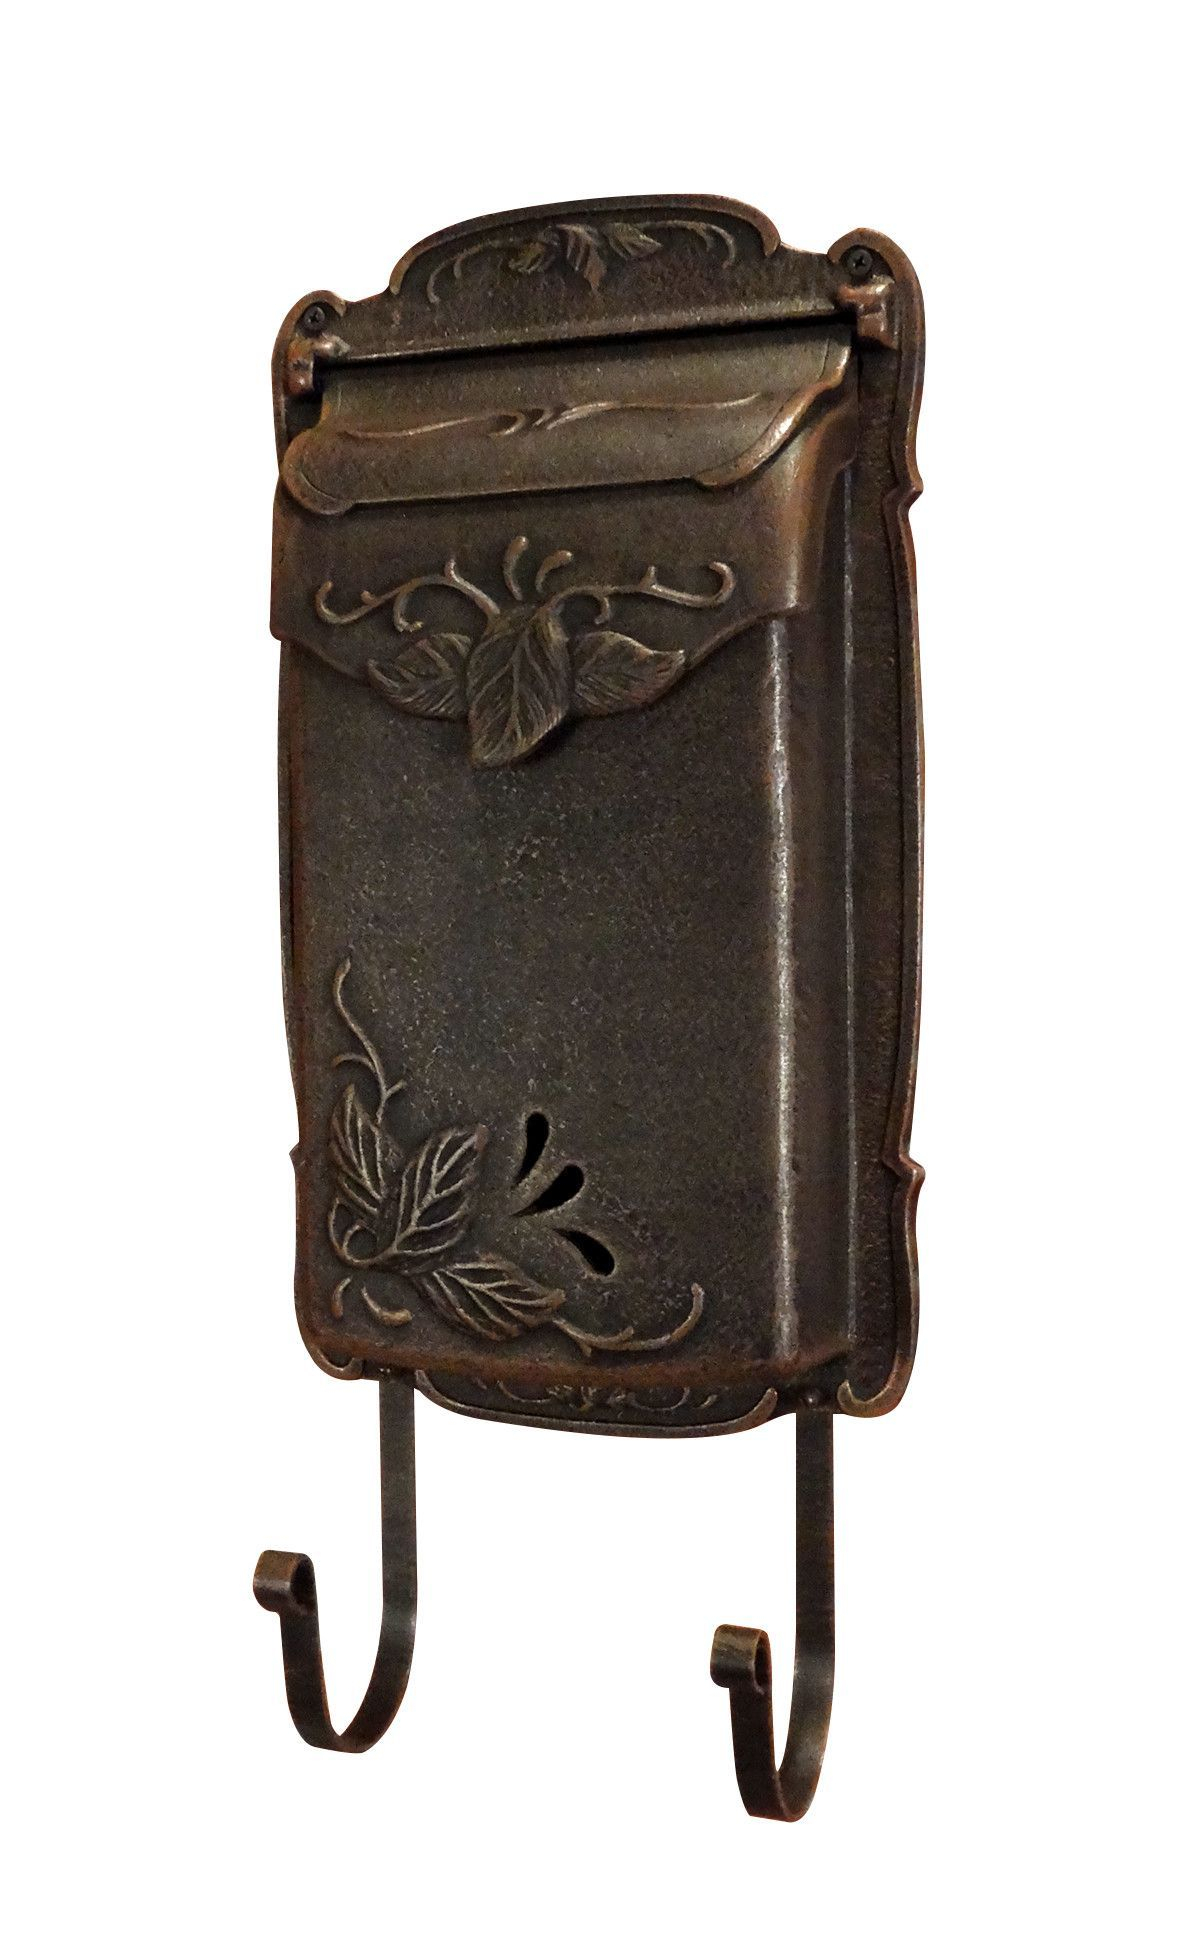 Floral Vertical Wall Mounted Mailbox   Mieszkania   Wall Intended For Lacordaire Wall Mounted Mailbox (View 9 of 30)